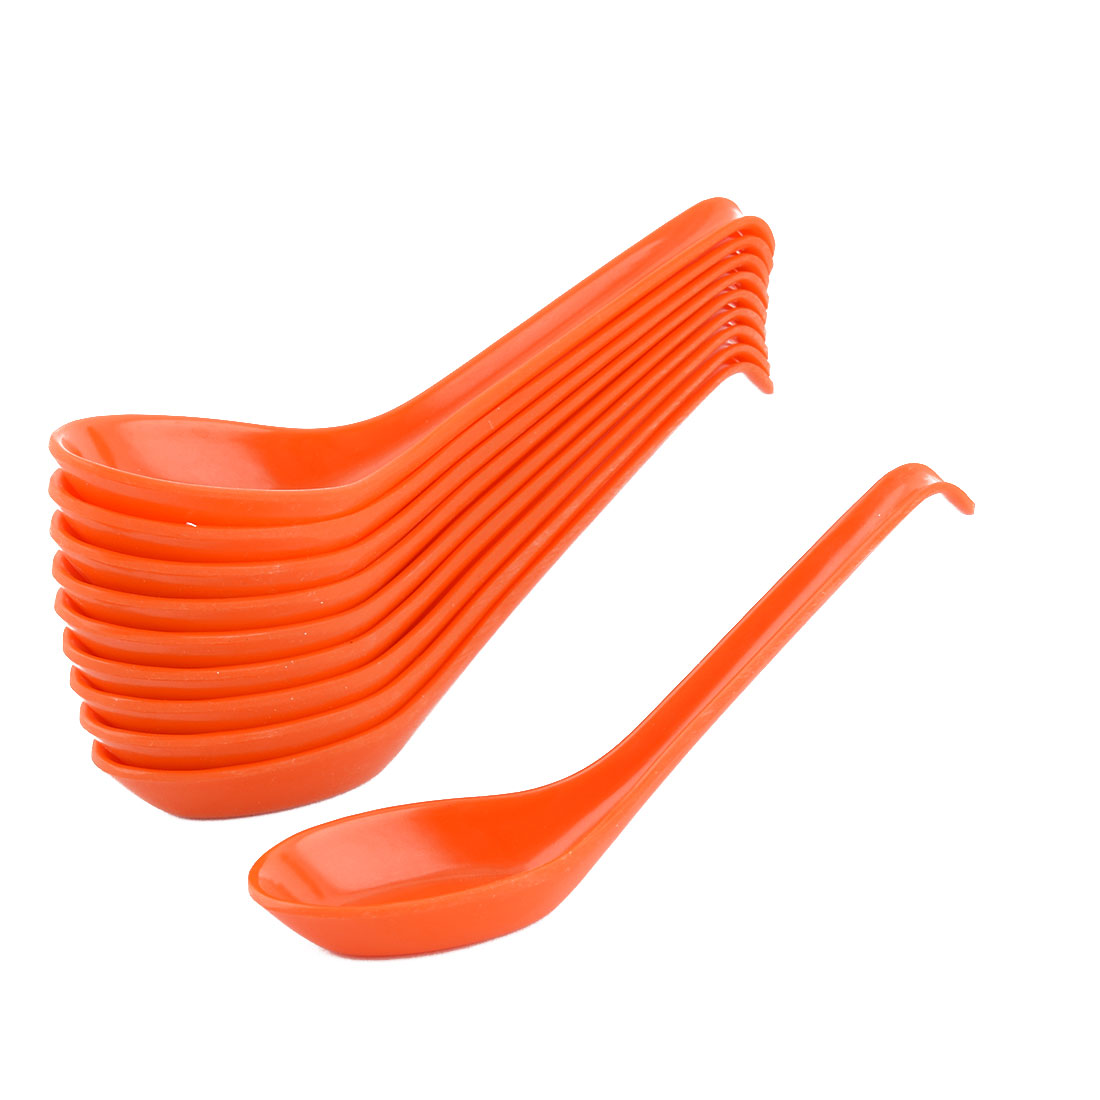 Plastic Household Kitchen Restaurant Porridge Soup Spoon Orange 16 x 4cm 10 PCS